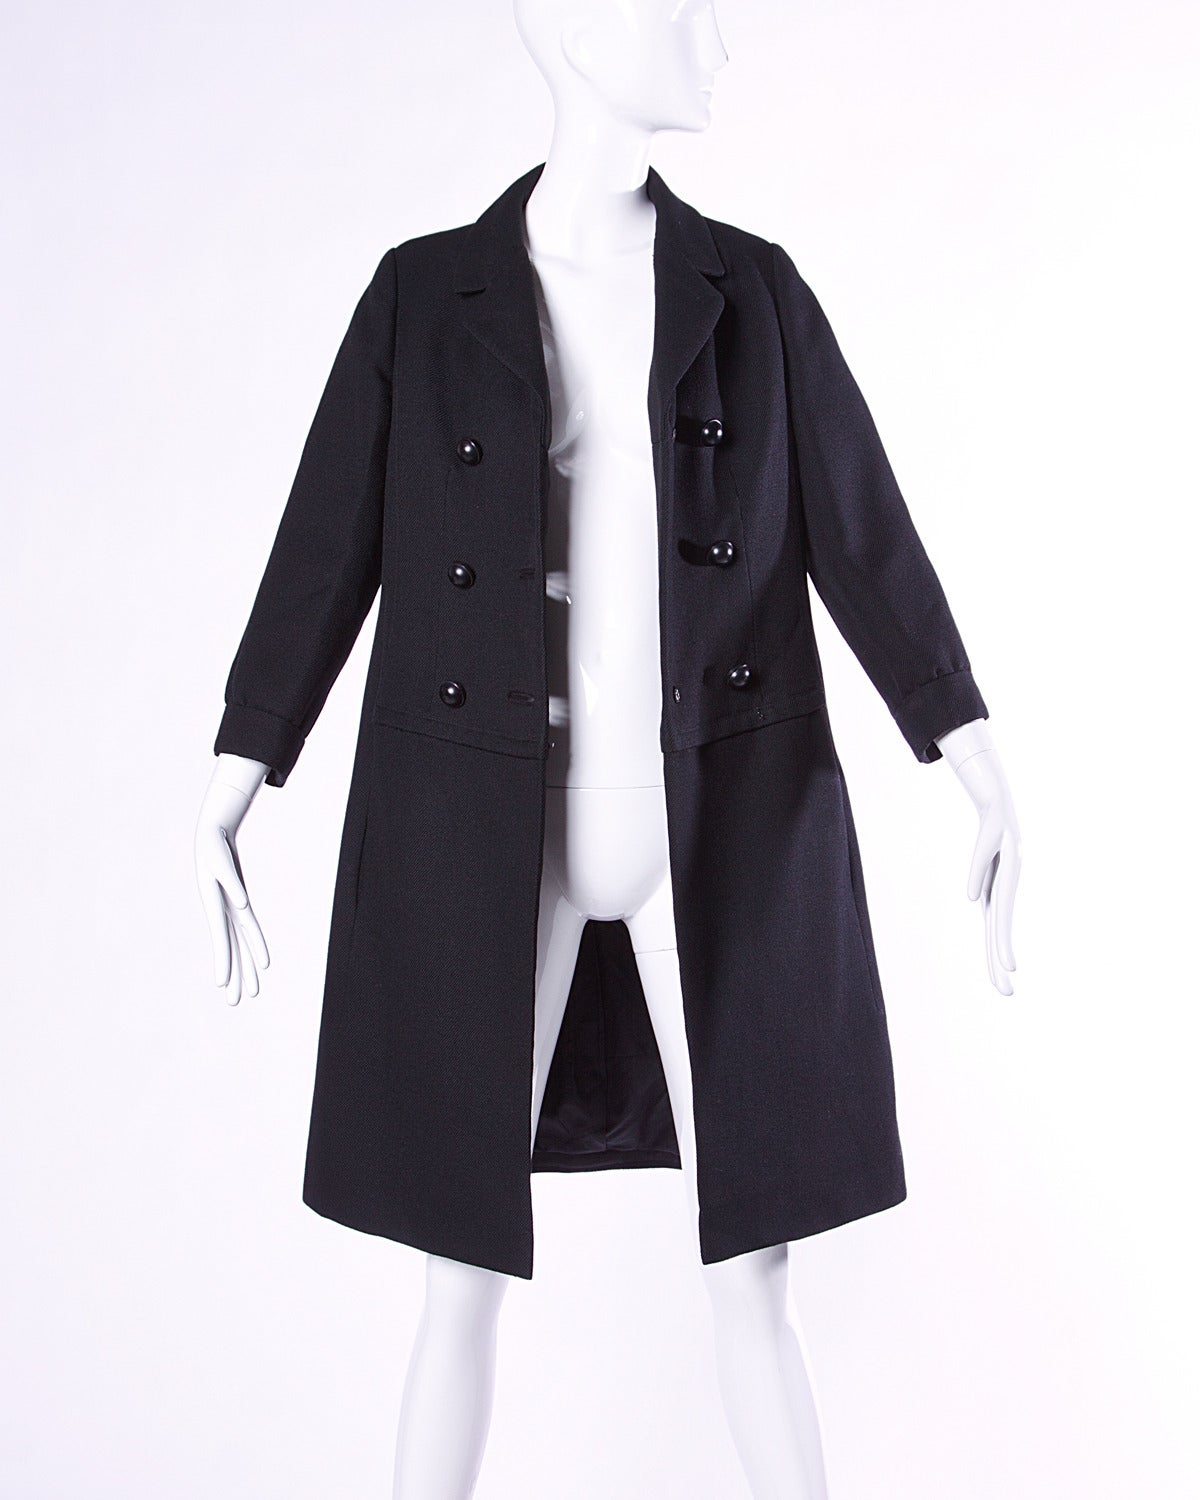 Gorgeous vintage black wool pea coat by Christian Dior in pristine condition. Double breasted buttons and notched lapels.  Details:  Fully Lined Side Pockets Front Button and Hook Closure Marked Size: 8 Estimated Size: Medium Color: